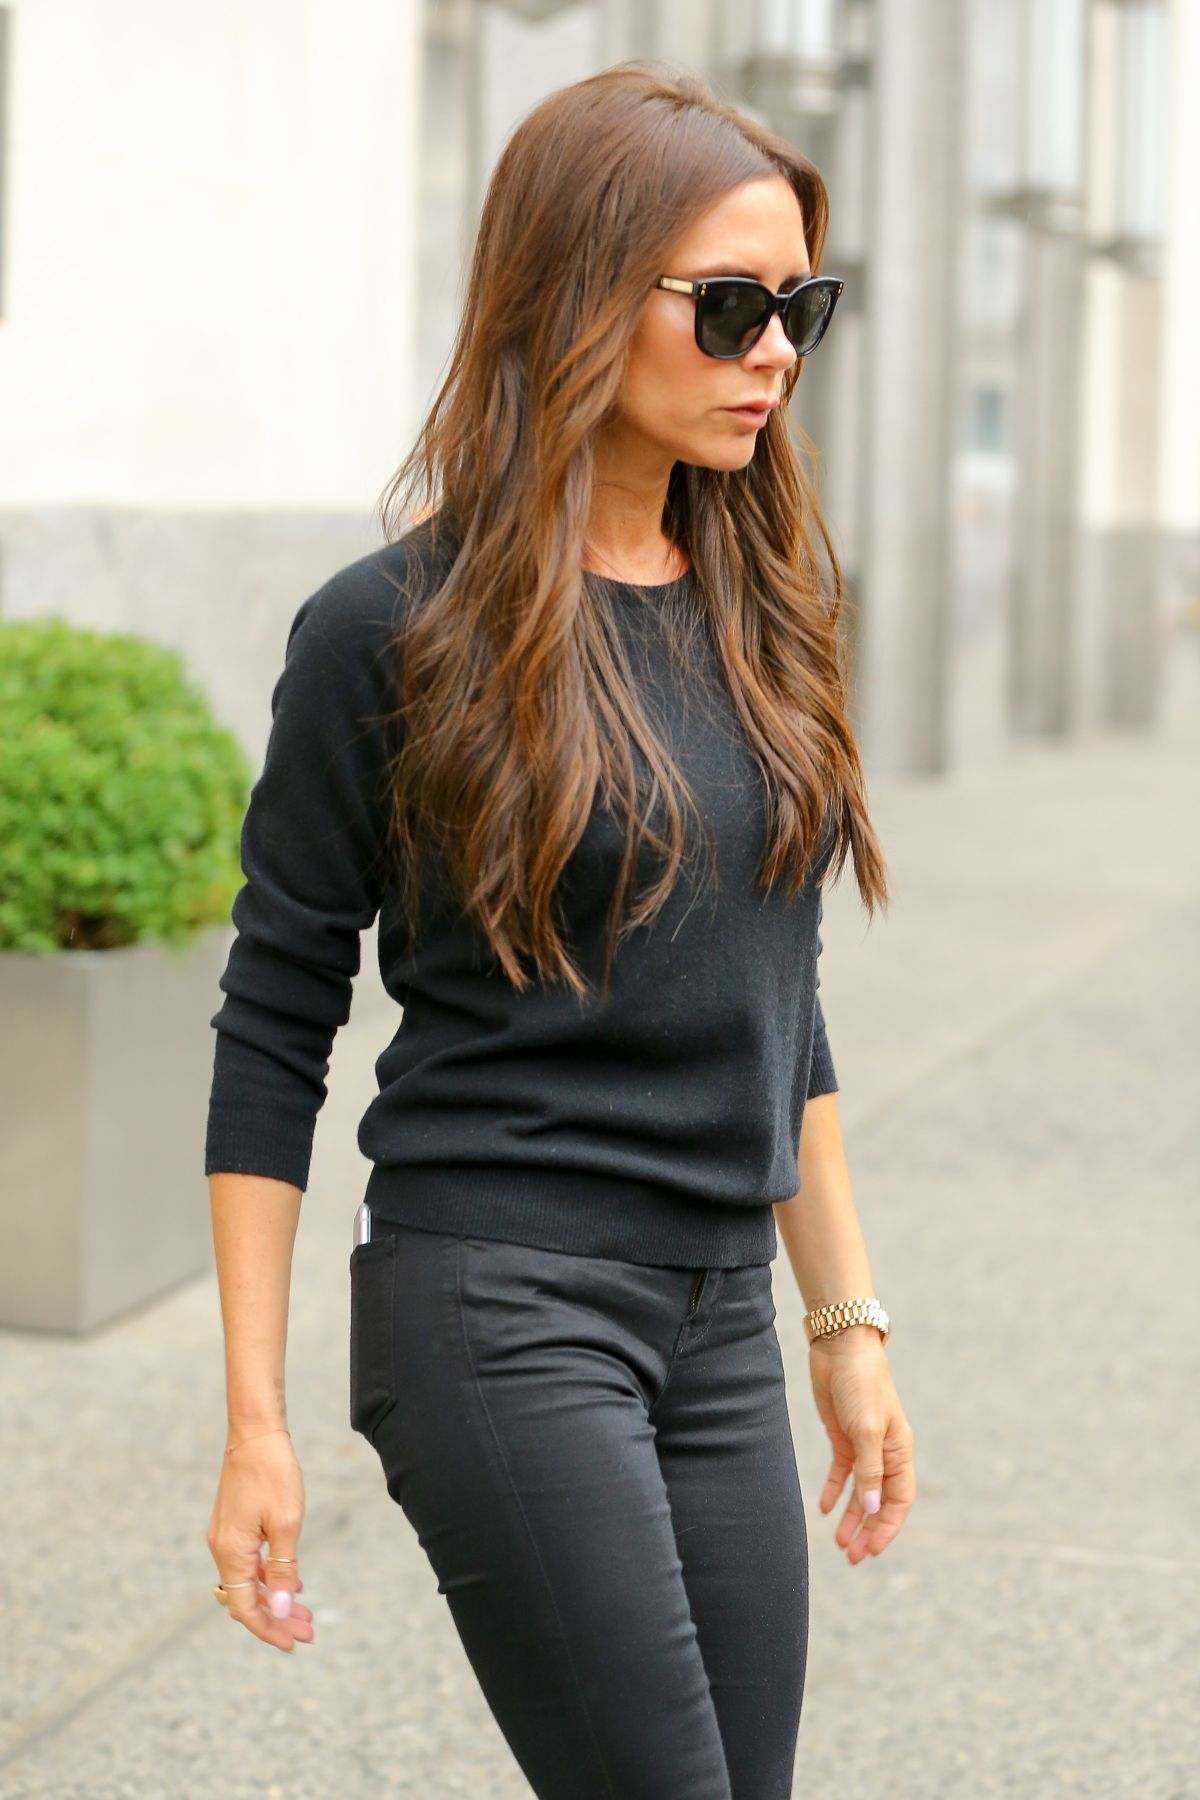 Victoria Beckham Out And About In Midtown - Celebzz Victoria Beckham